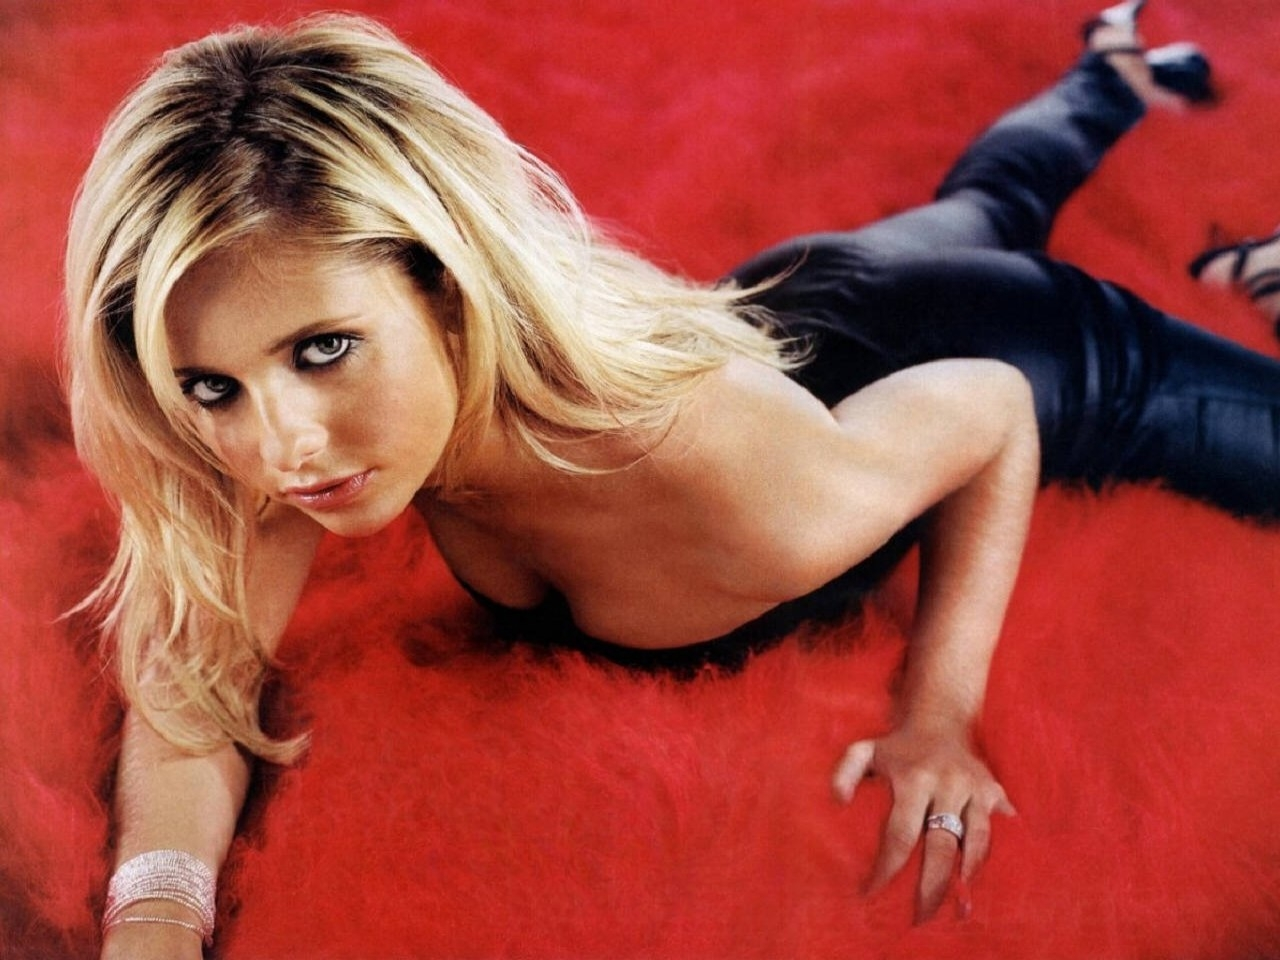 Wallpaper di Sarah Michelle Gellar, la star di Buffy e interprete di tanti horror tra i quali The Grudge